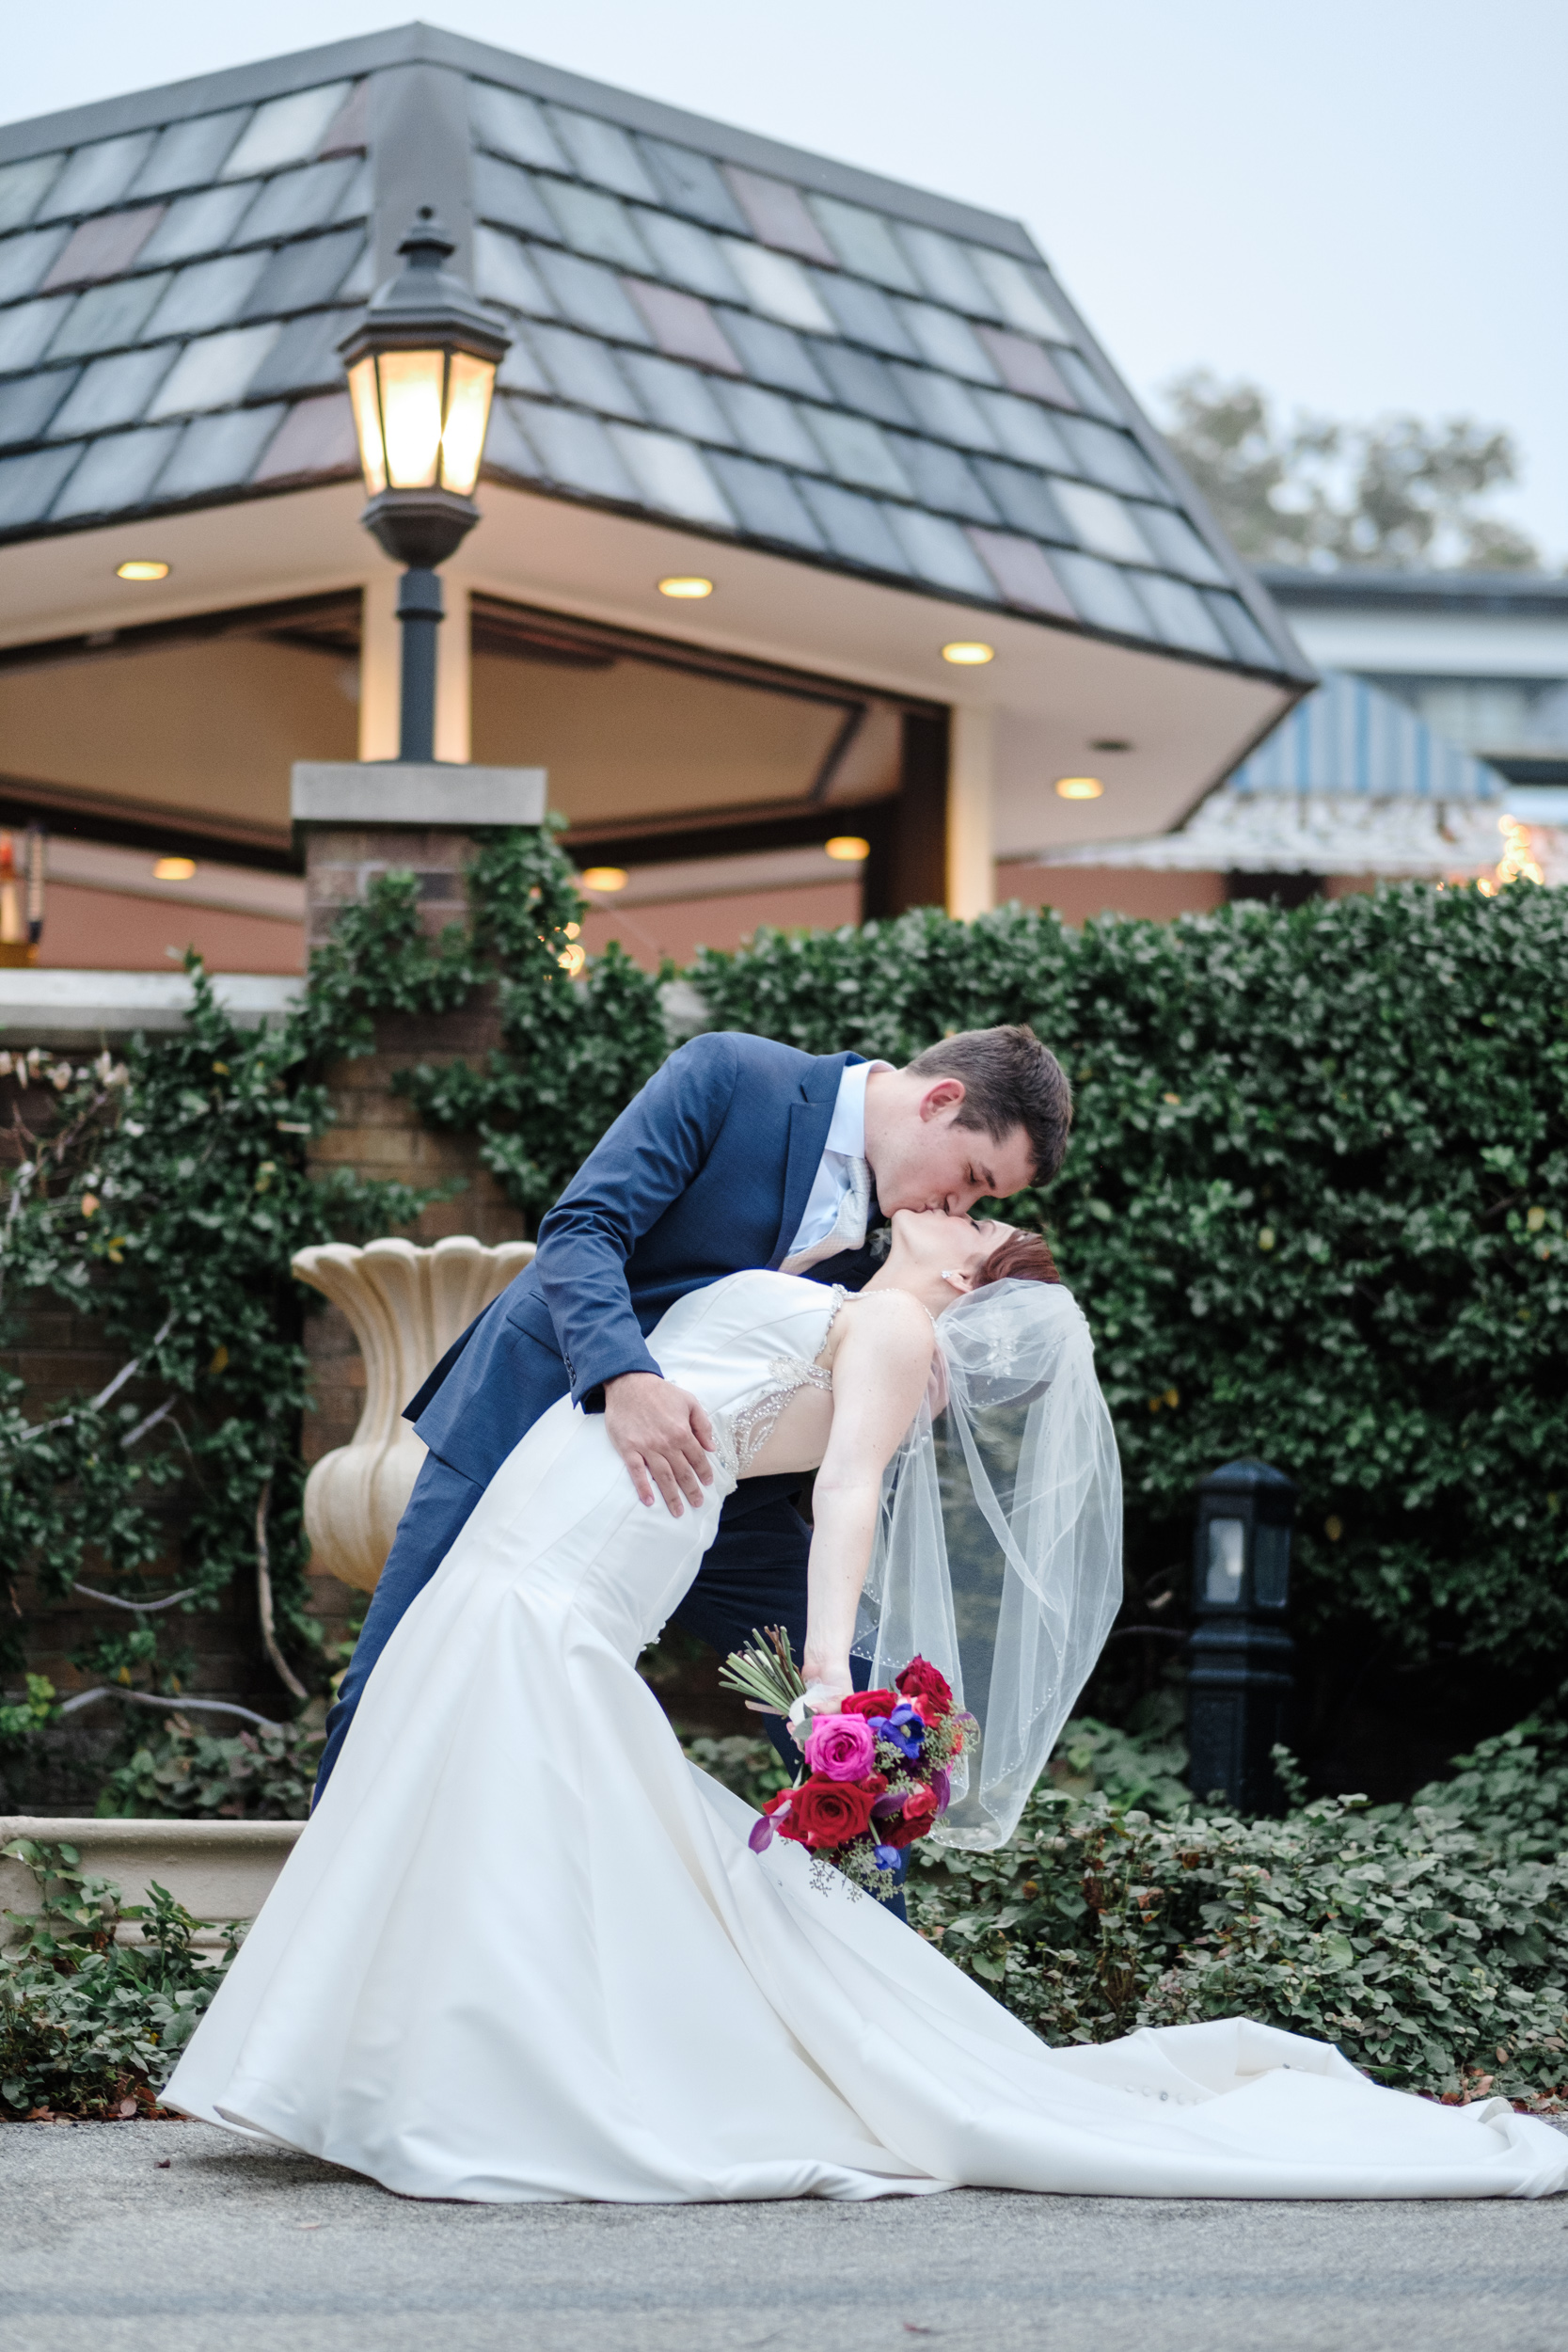 outdoor natural light photojournalistic candid portrait of bride and groom after outdoor wedding ceremony